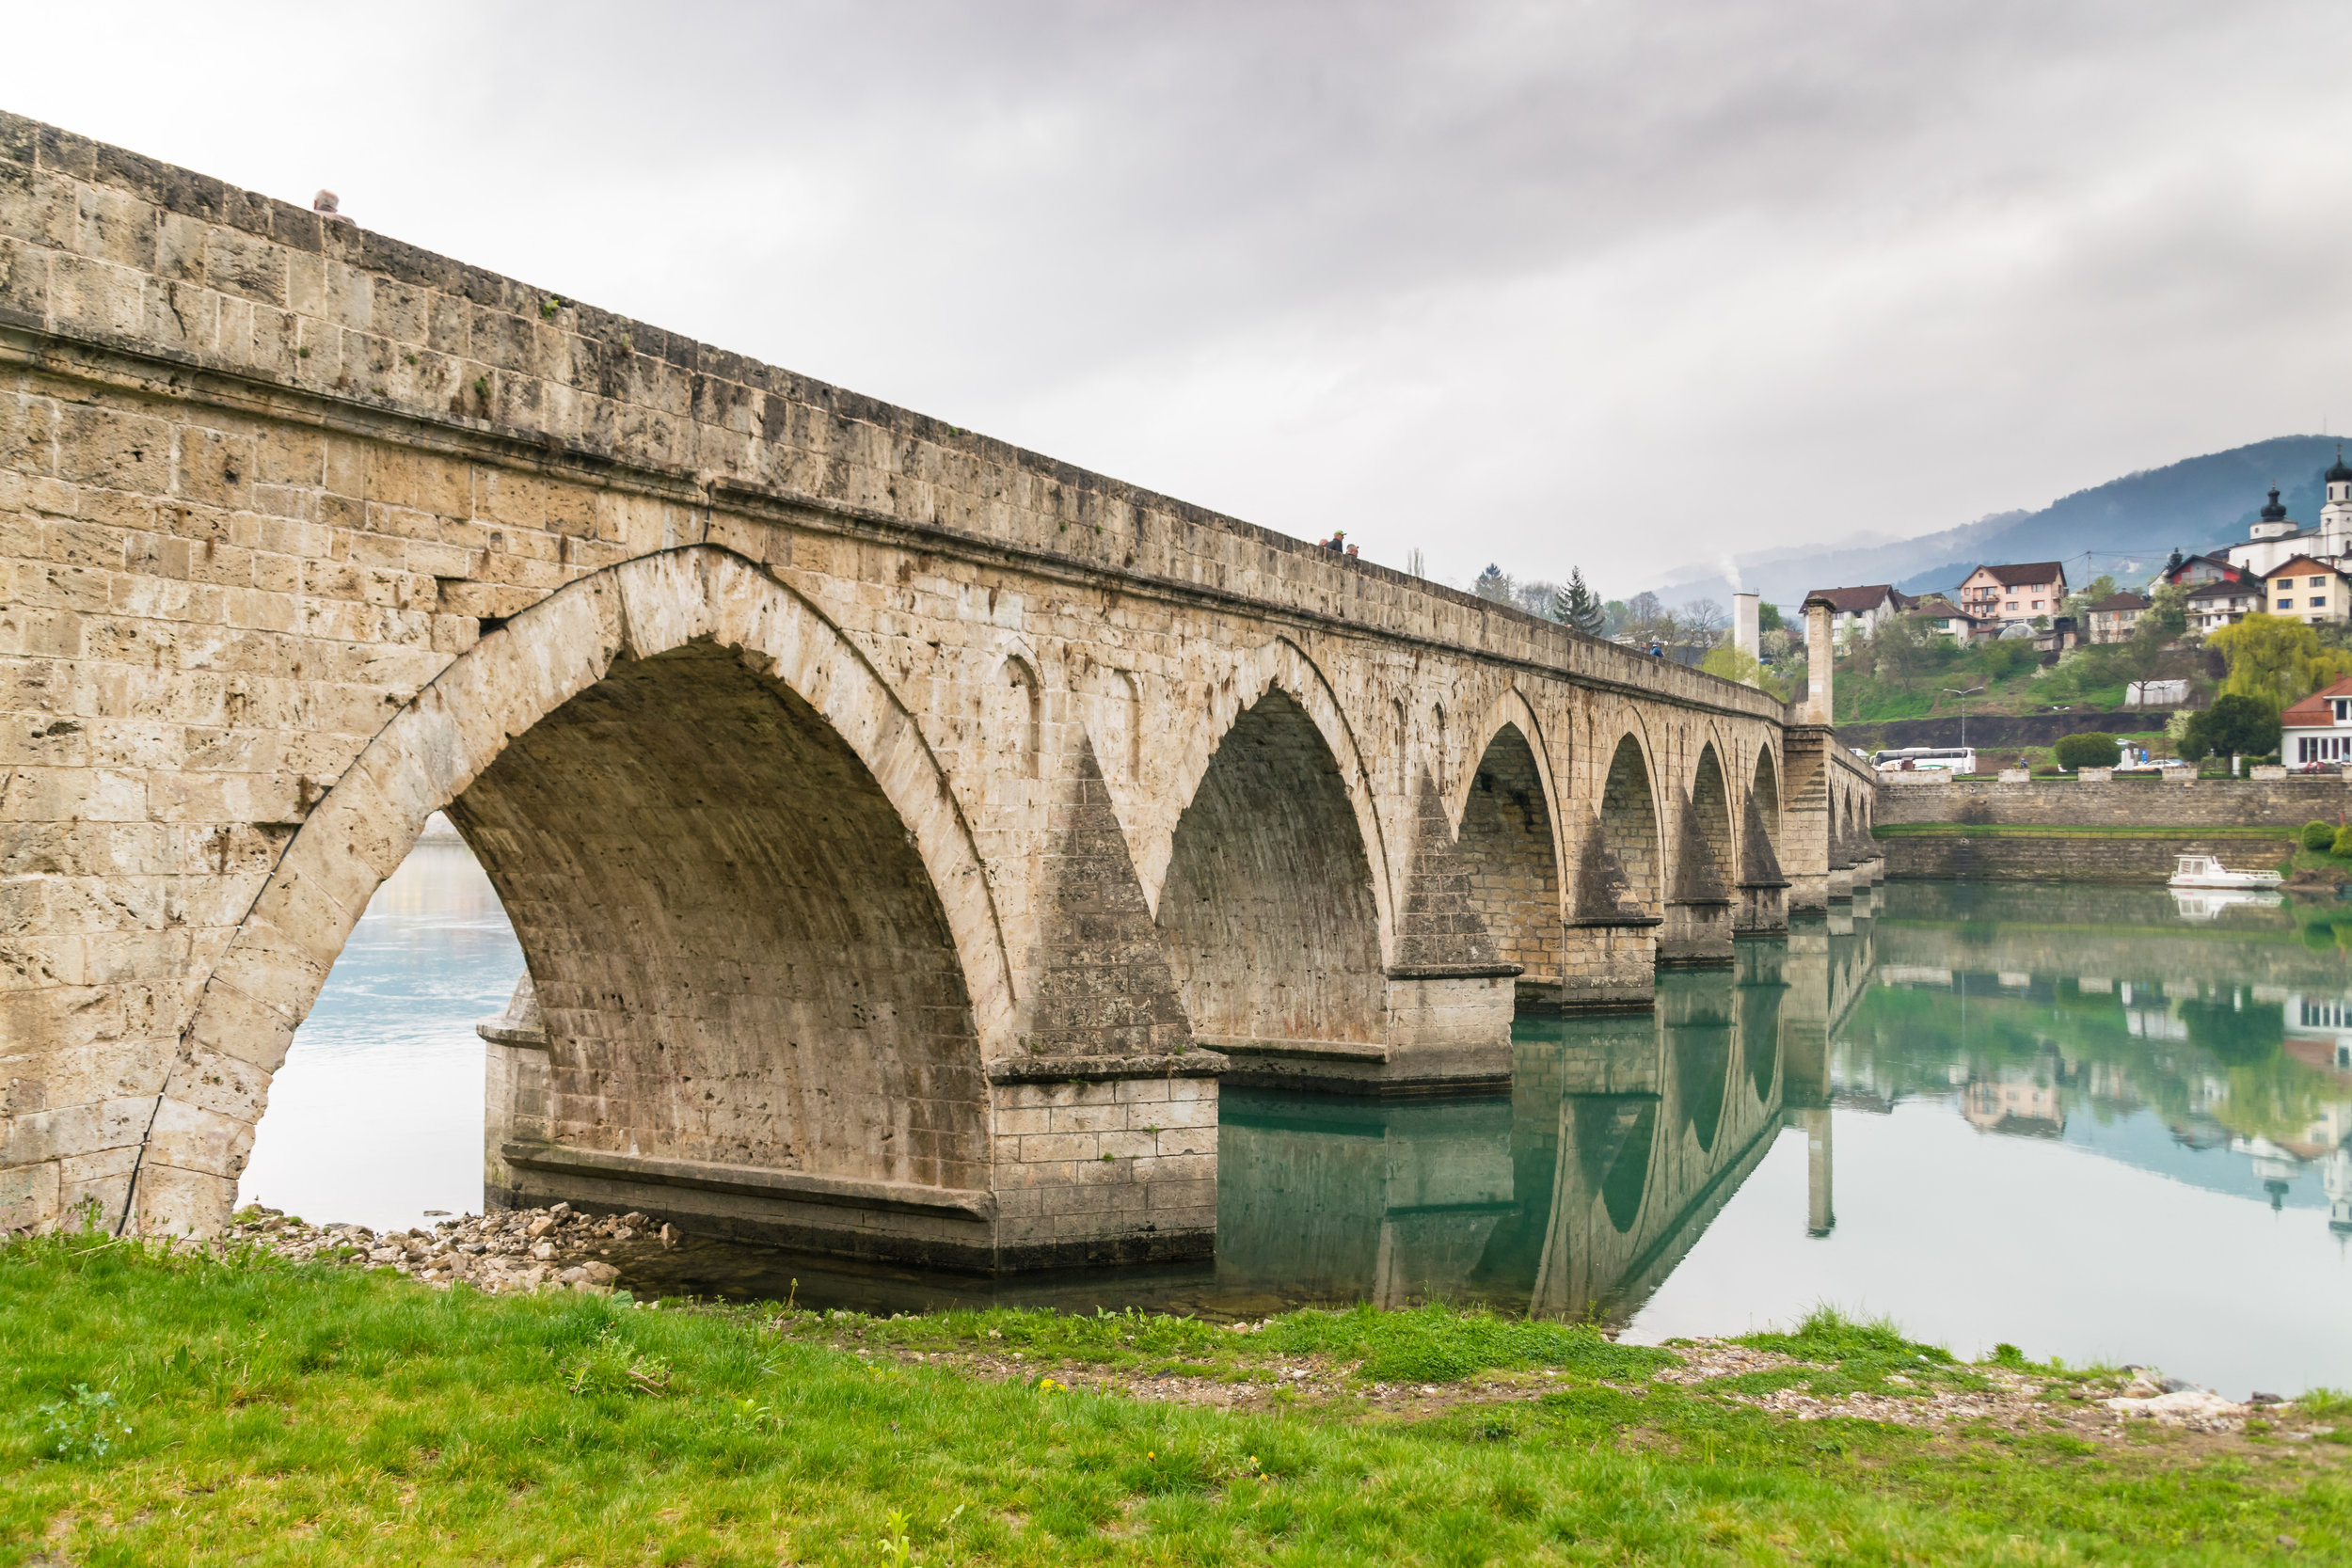 BiH_Visegrad+bridge-1.jpg